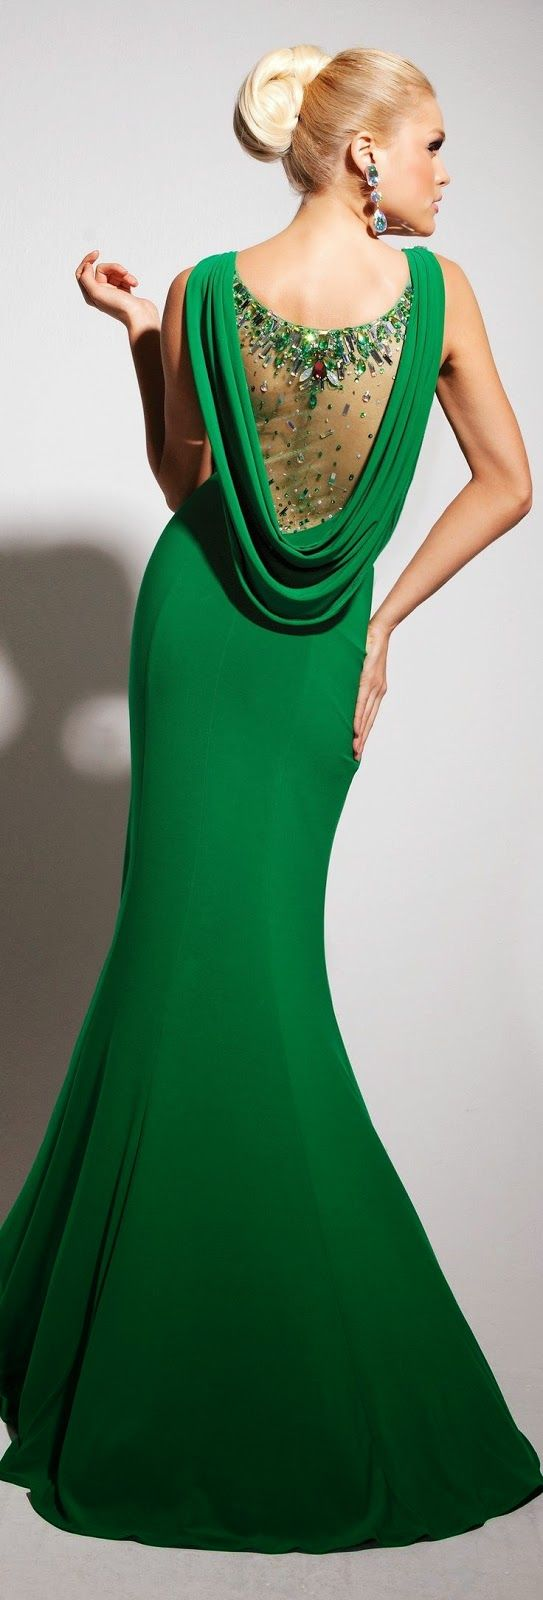 Tony Bowls exclusive http://fashionsworld123.blogspot.com/